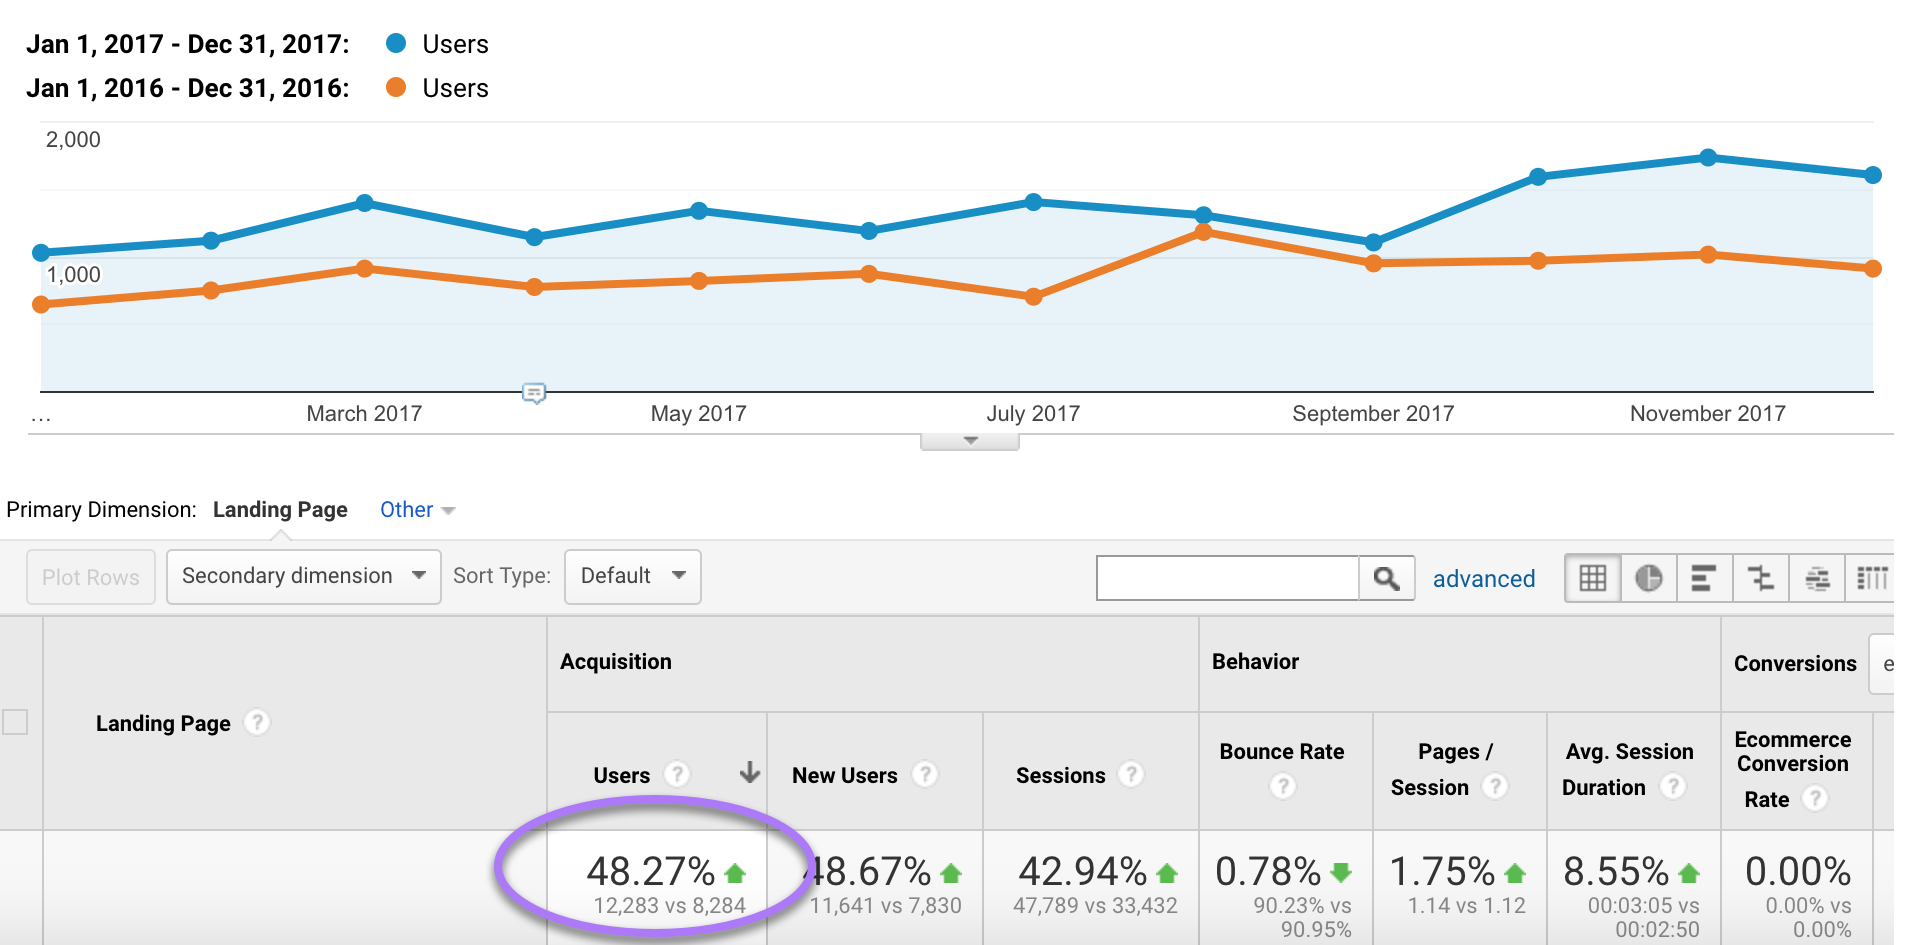 uncategorized-IMAGE 4  Portent SERP Gen Tool Traffic - 5 KPIs for Measuring Outreach and Link Building Efforts